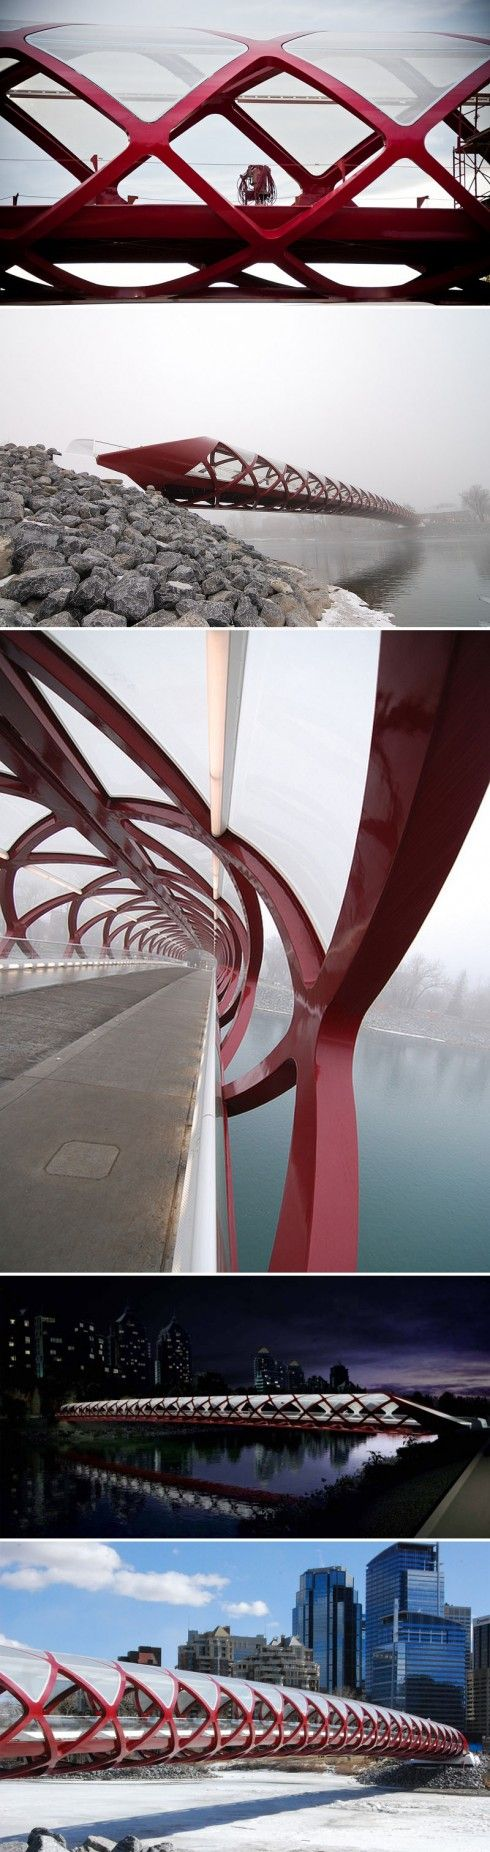 Santiago Calatrava, the Peace Bridge in Calgary, Canada